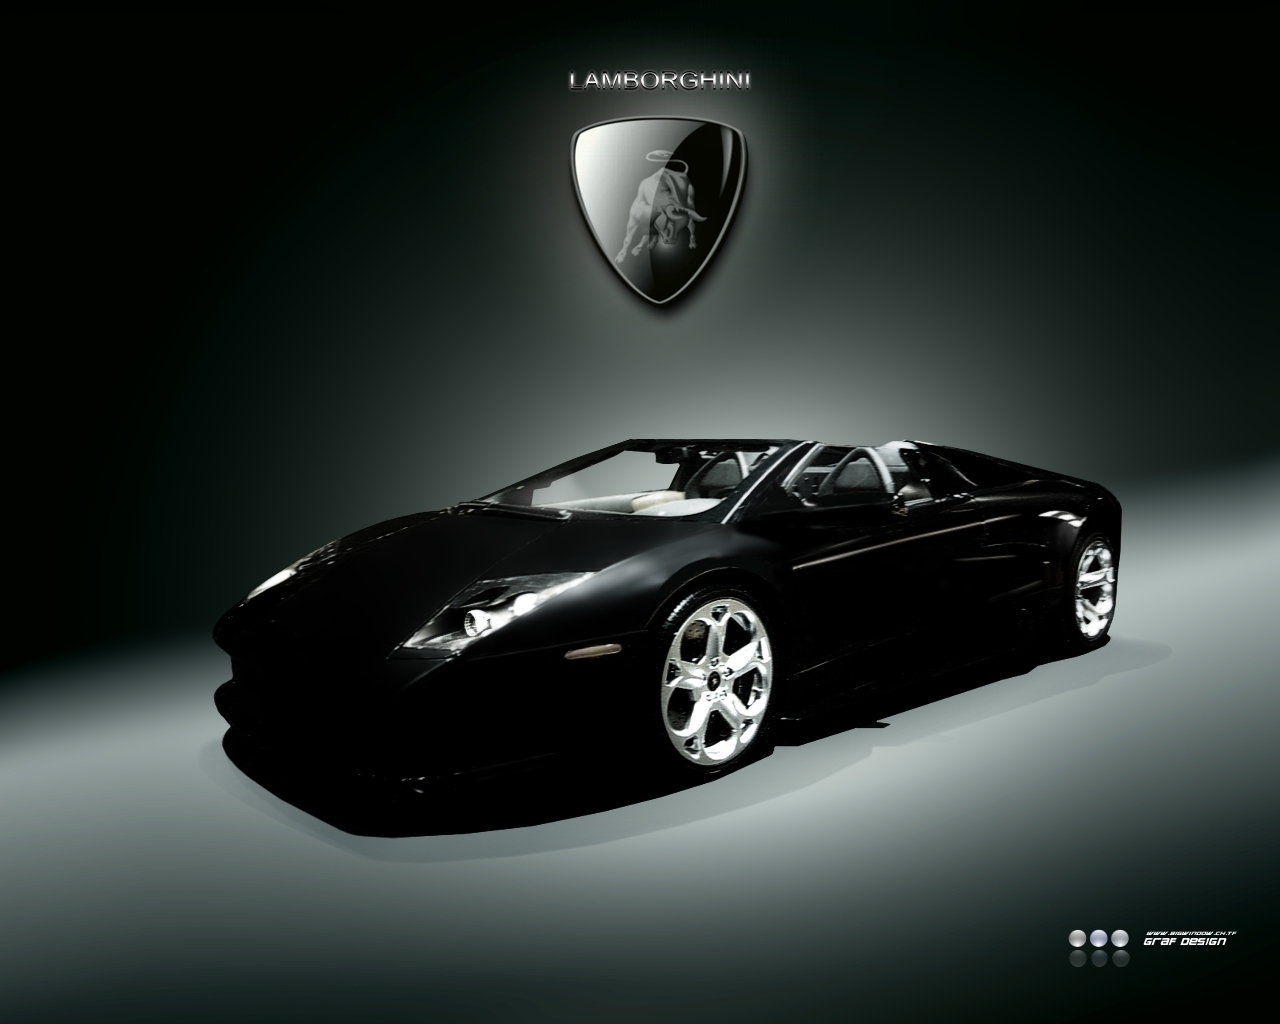 Lamborghini Cars Pictures 6 Desktop Background